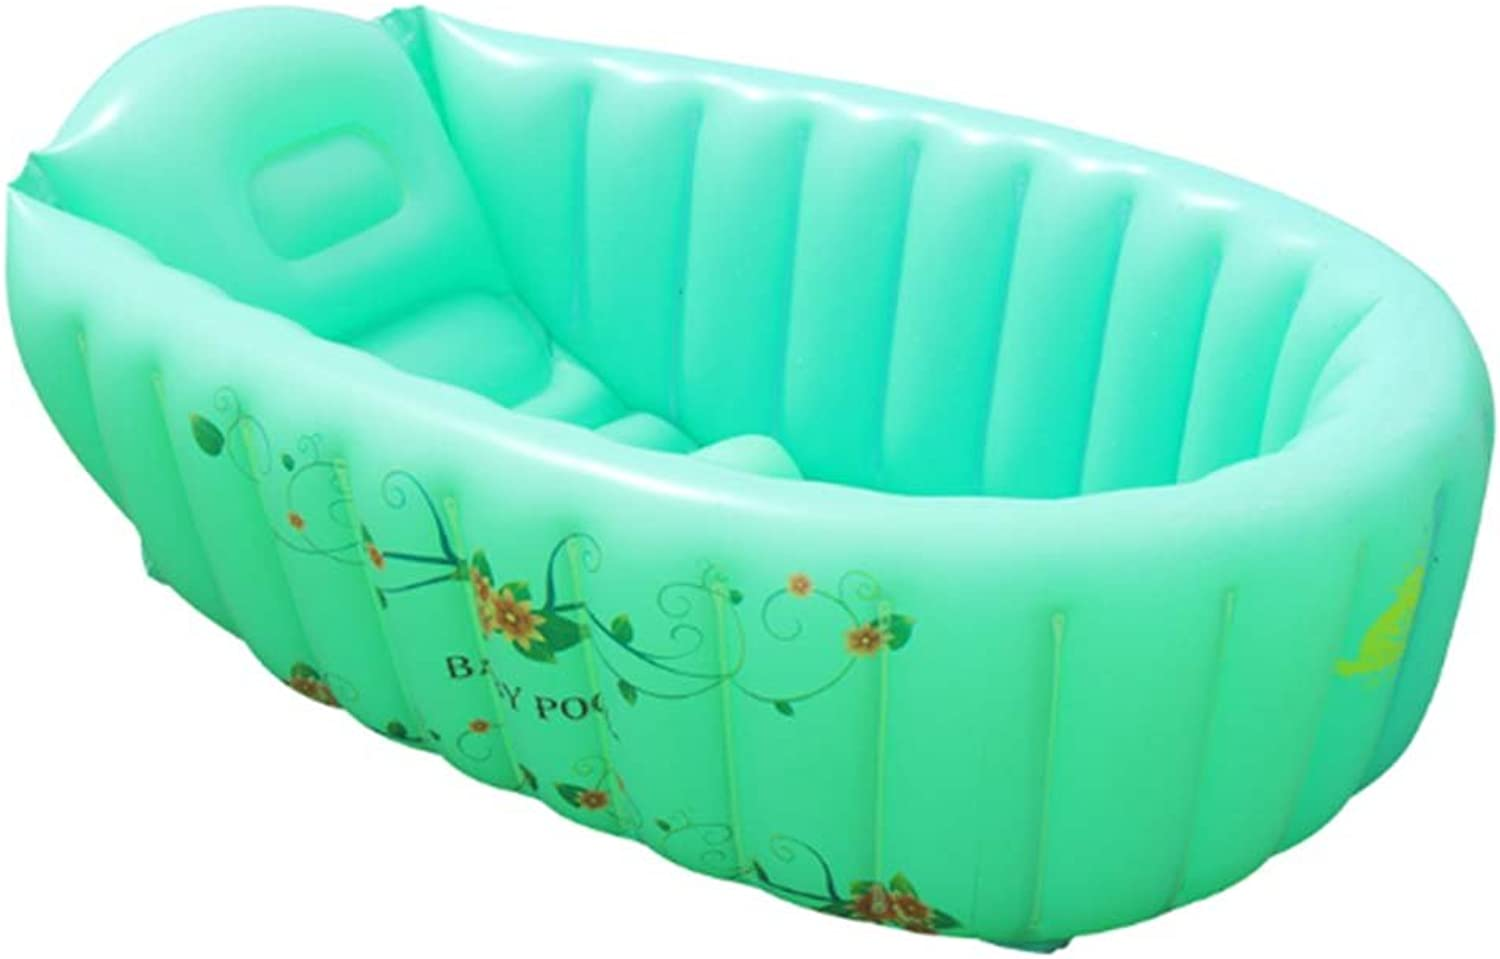 Gxf air baths Inflatable Bathtub - Baby Shower (0-4 Years) Bathtub Insulation, Folding Newborn Tub, Thickened Plastic Material, Comfortable Bathtub, Fitted Bathroom Bedroom Pool Garden bathtubs